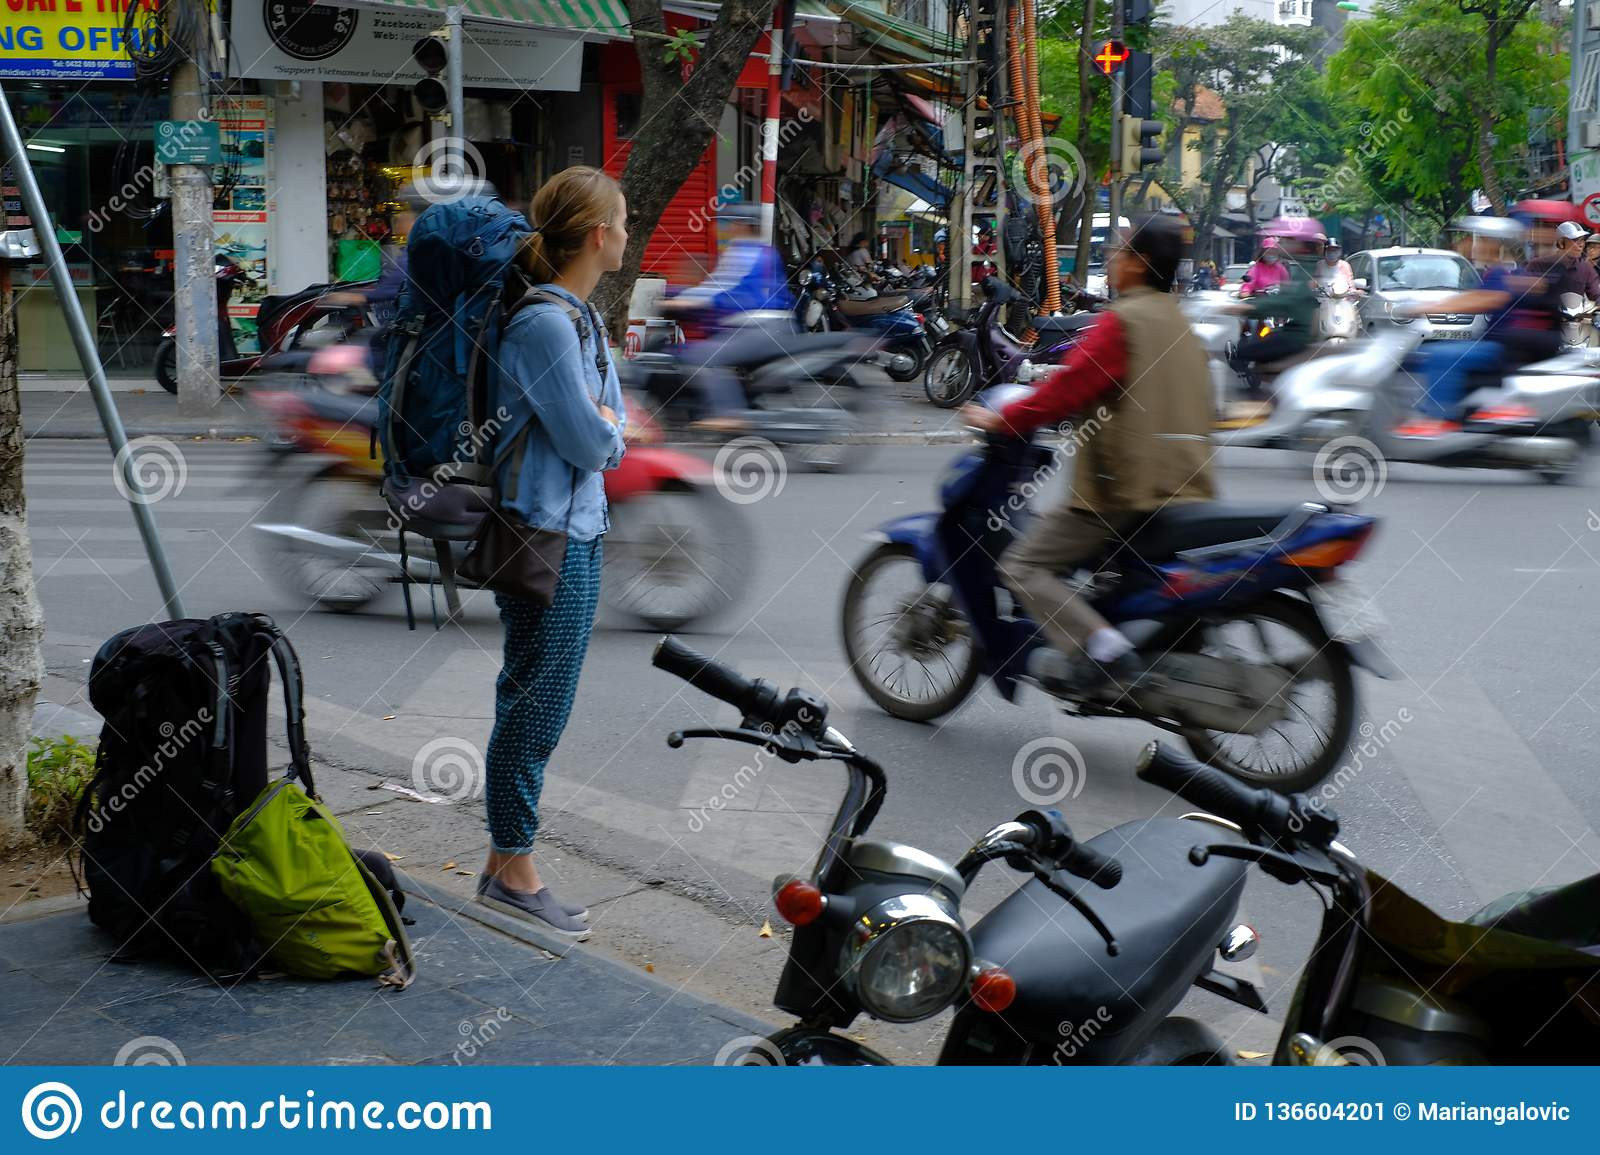 Hanoi / Vietnam, 05/11/2017: Backpacker watching busy hectic traffic with passing cars and motorbikes on a Hanoi street